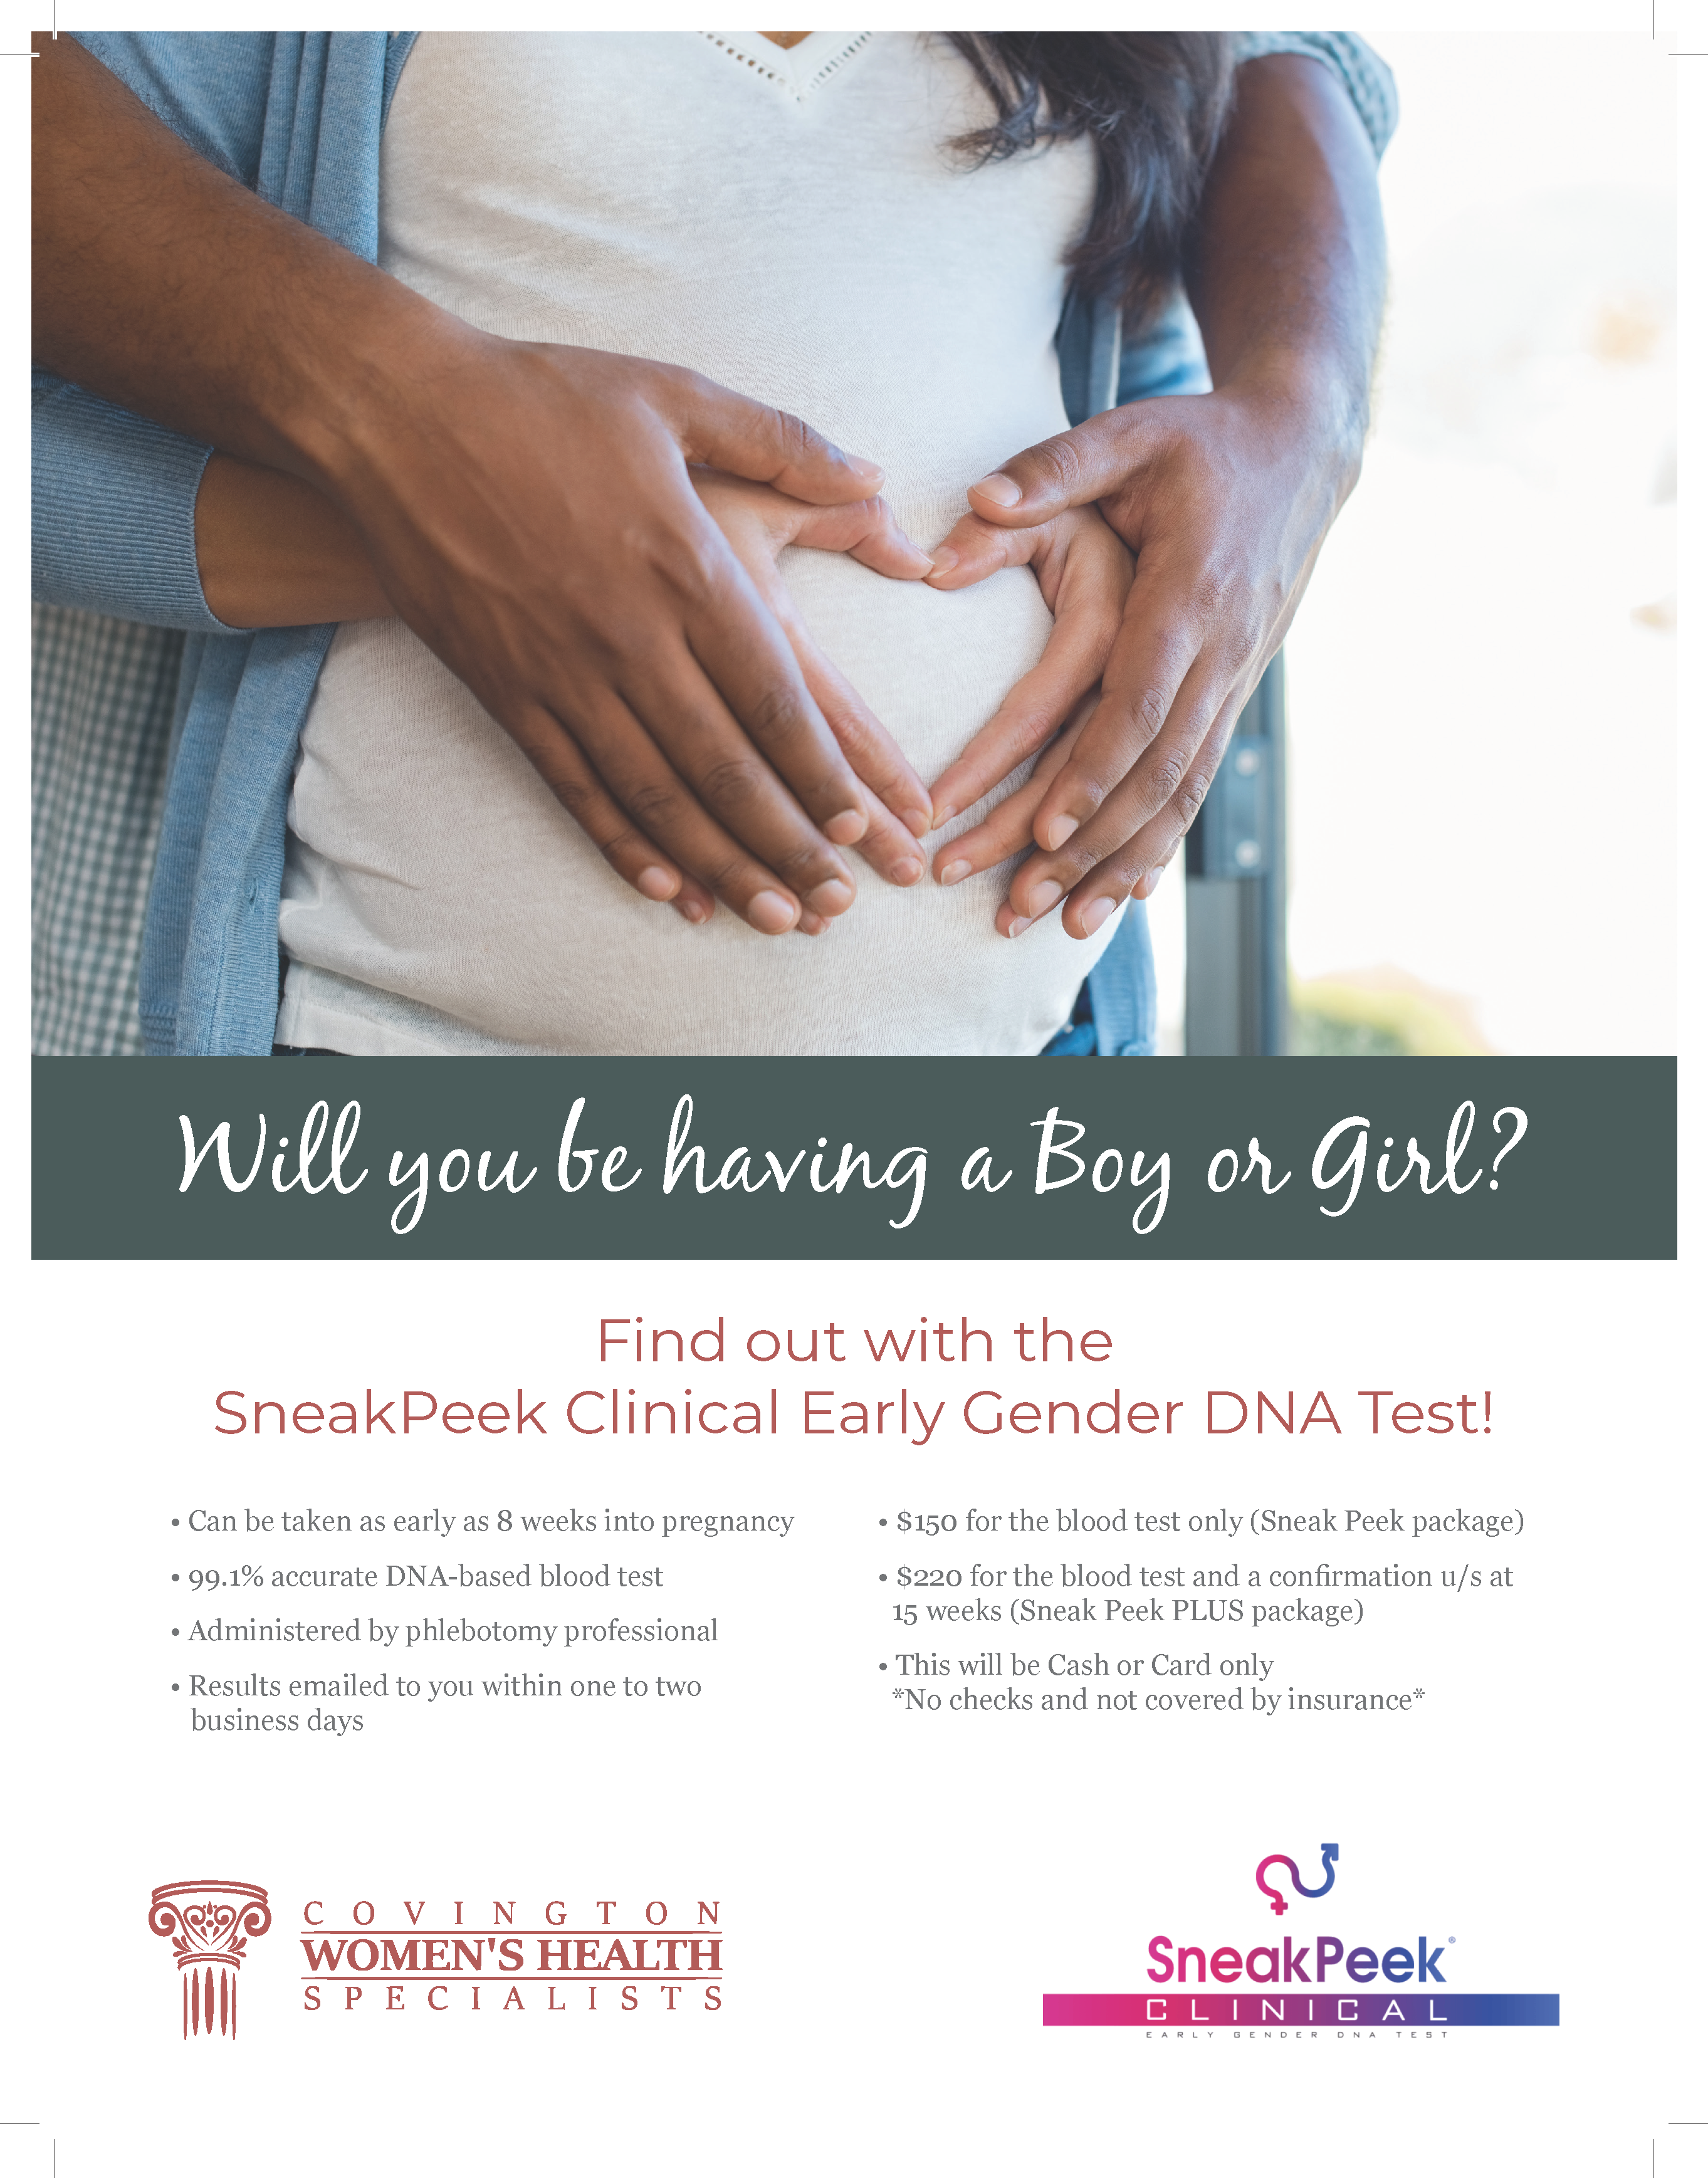 Flyer one of Covington Women's Health gender reveal service.